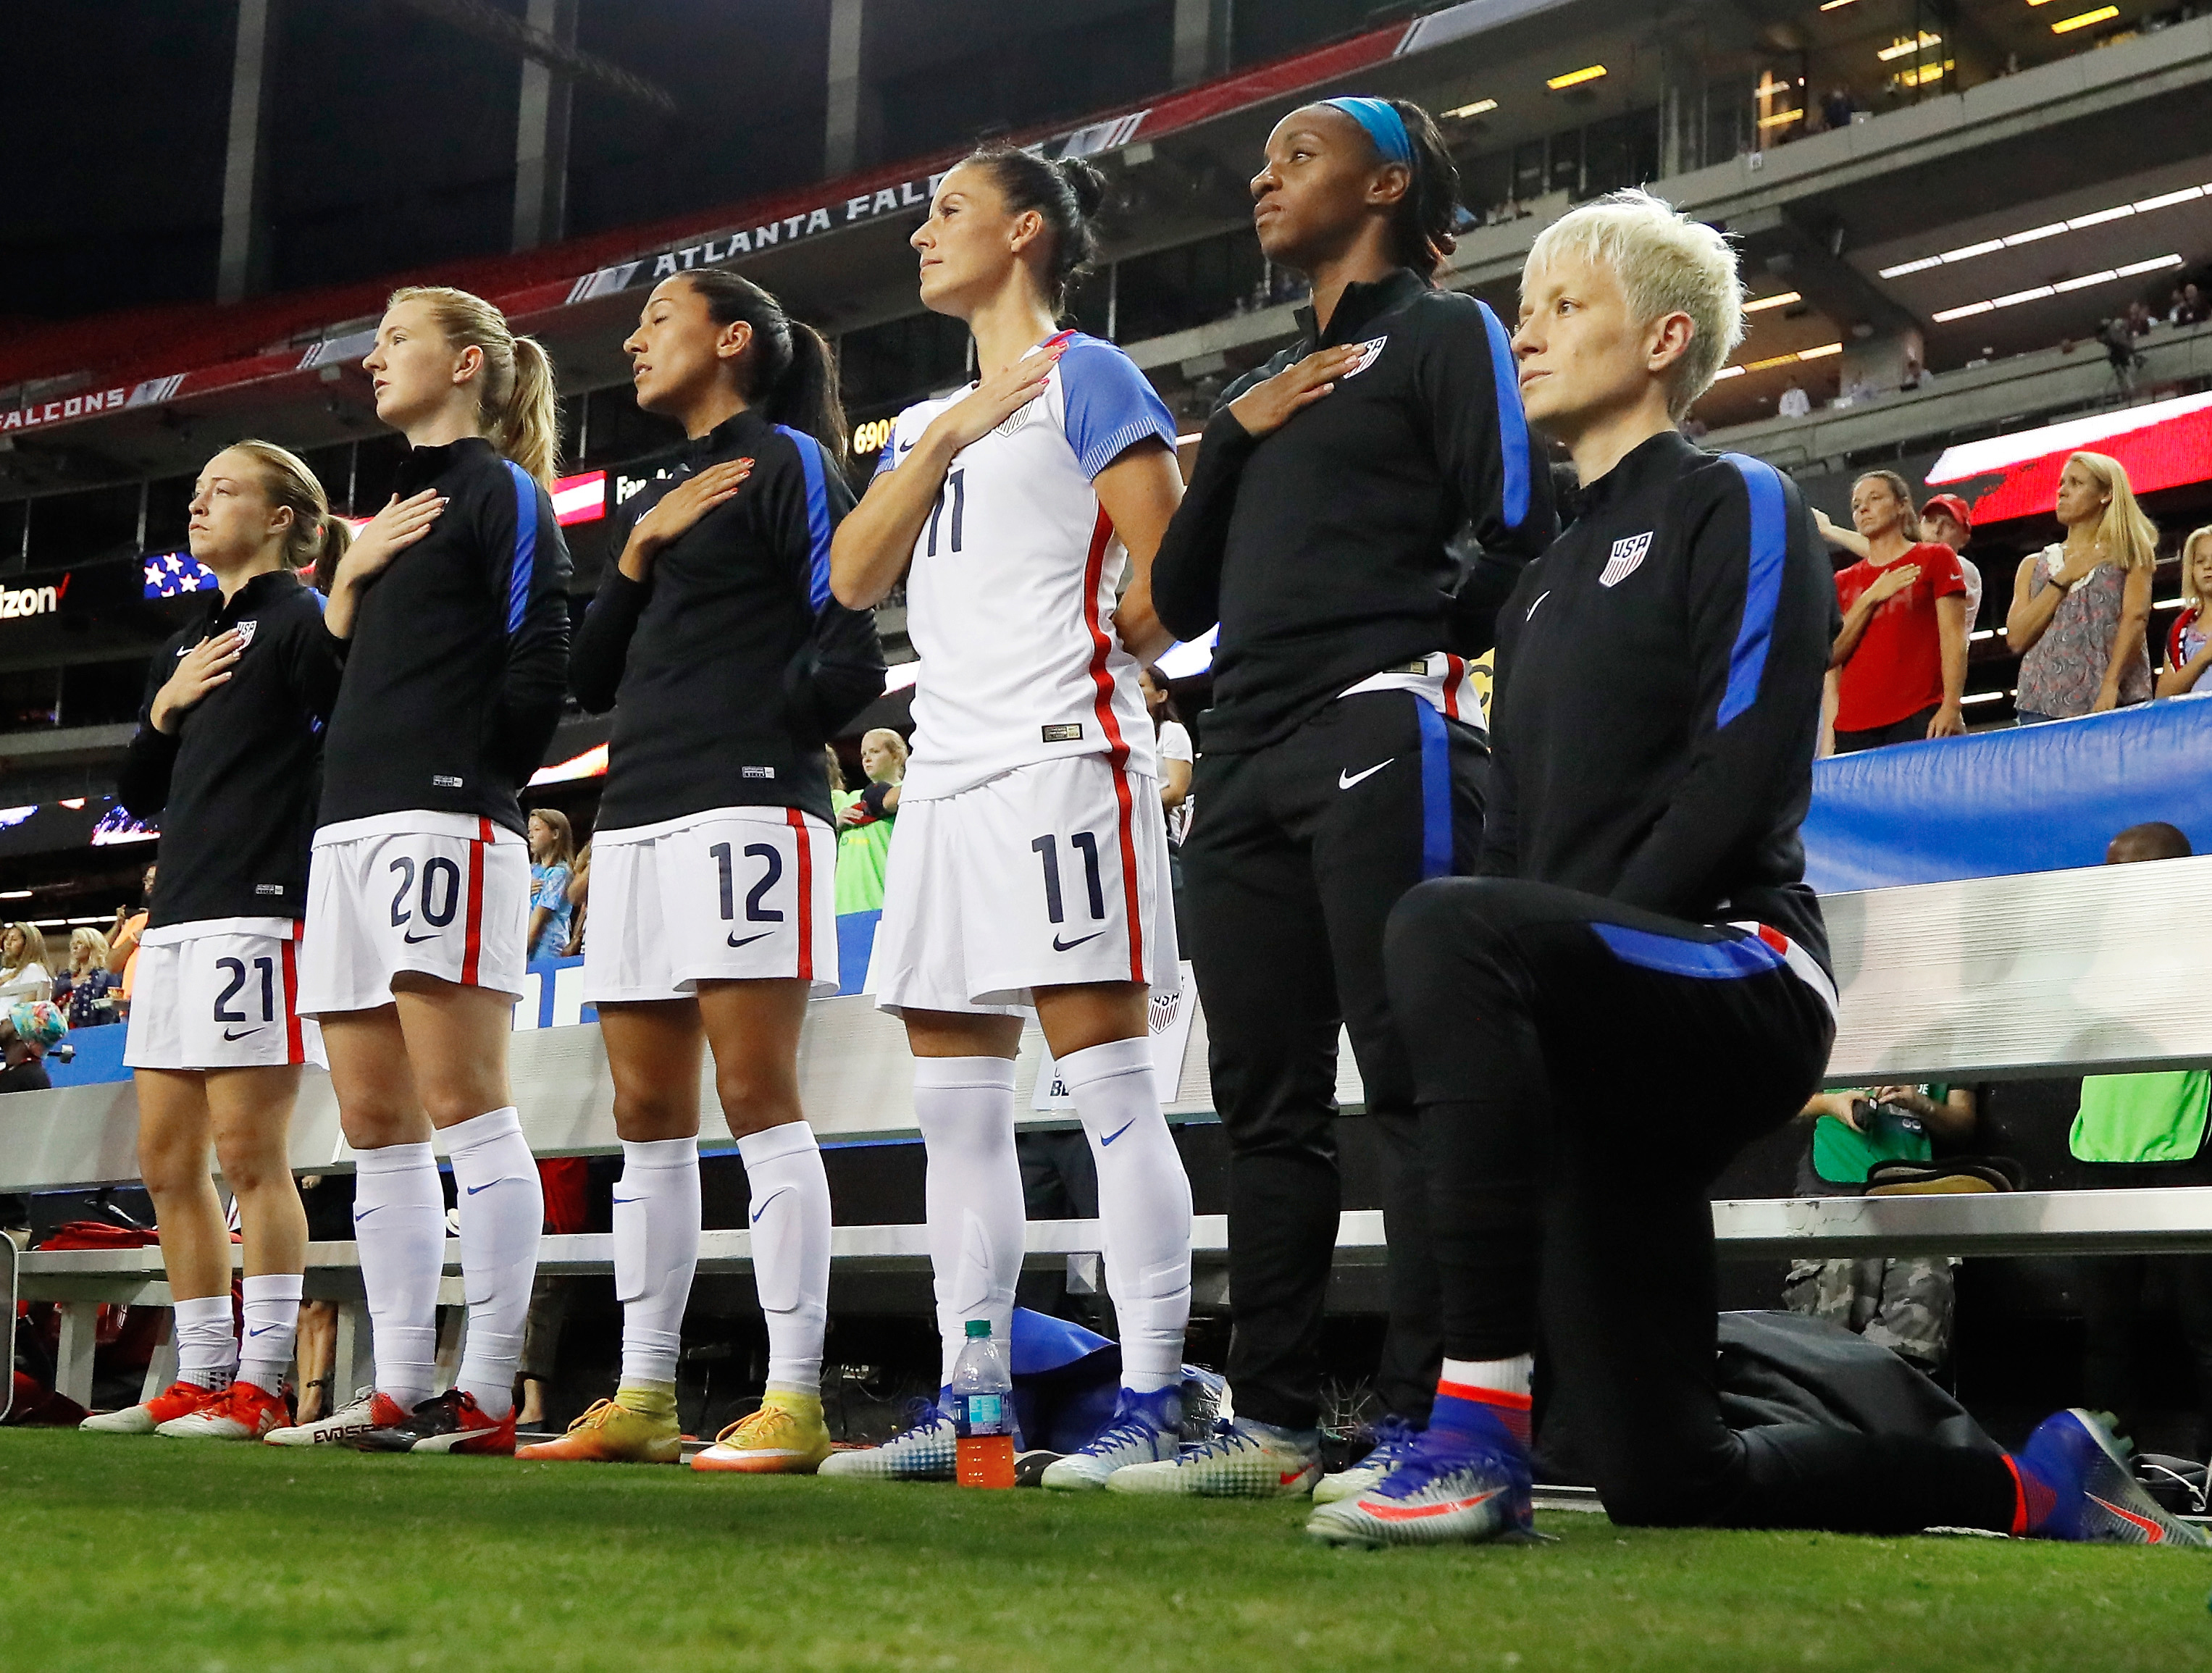 Player Protests: When Athletes Stand Up (Or Kneel) For Social Justice Issues